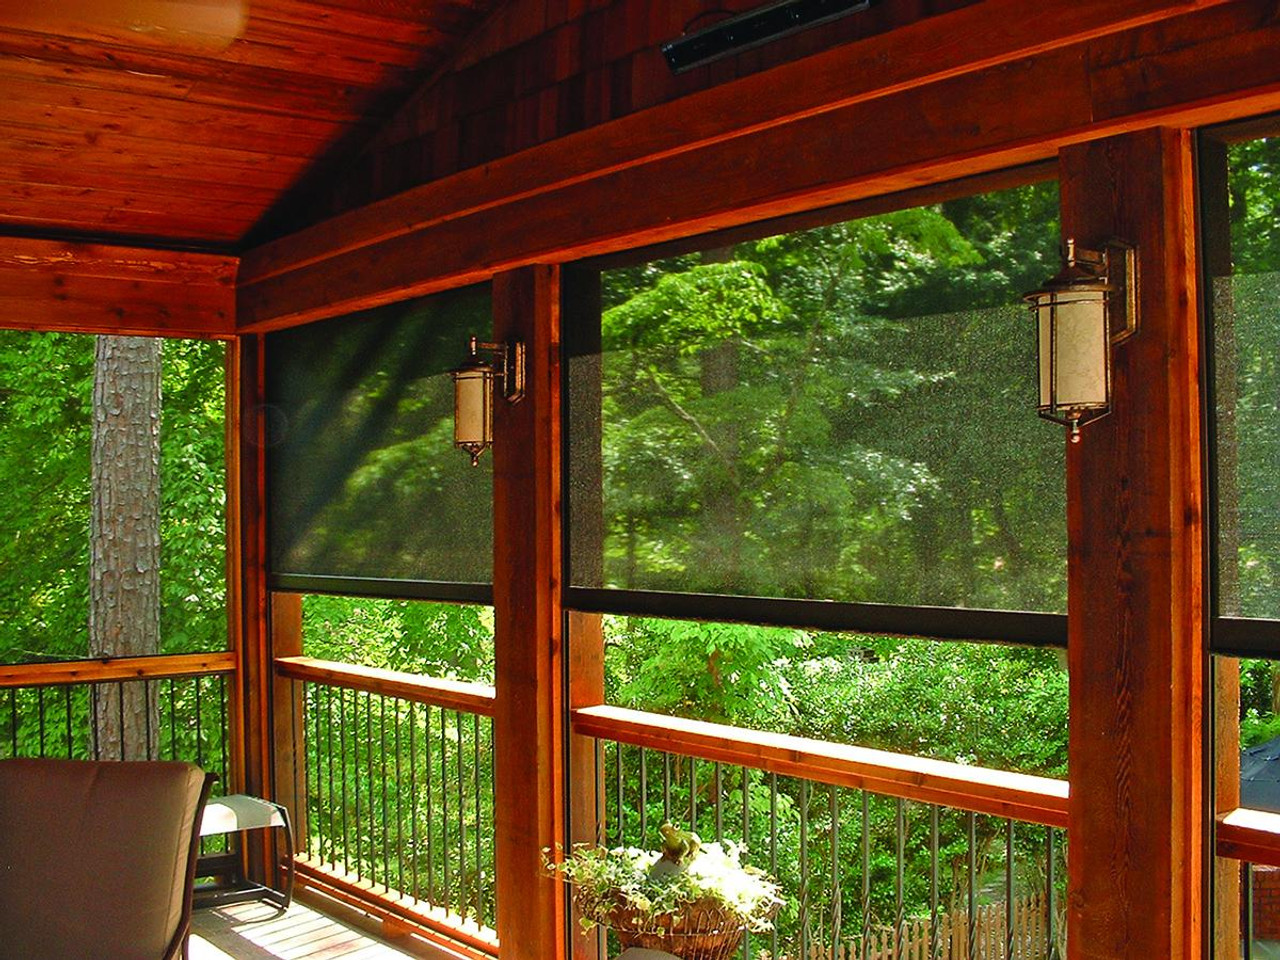 Retractable Insect Screens Pull Down Porch Screen Disappearing Screen Doors Metro Screenworks